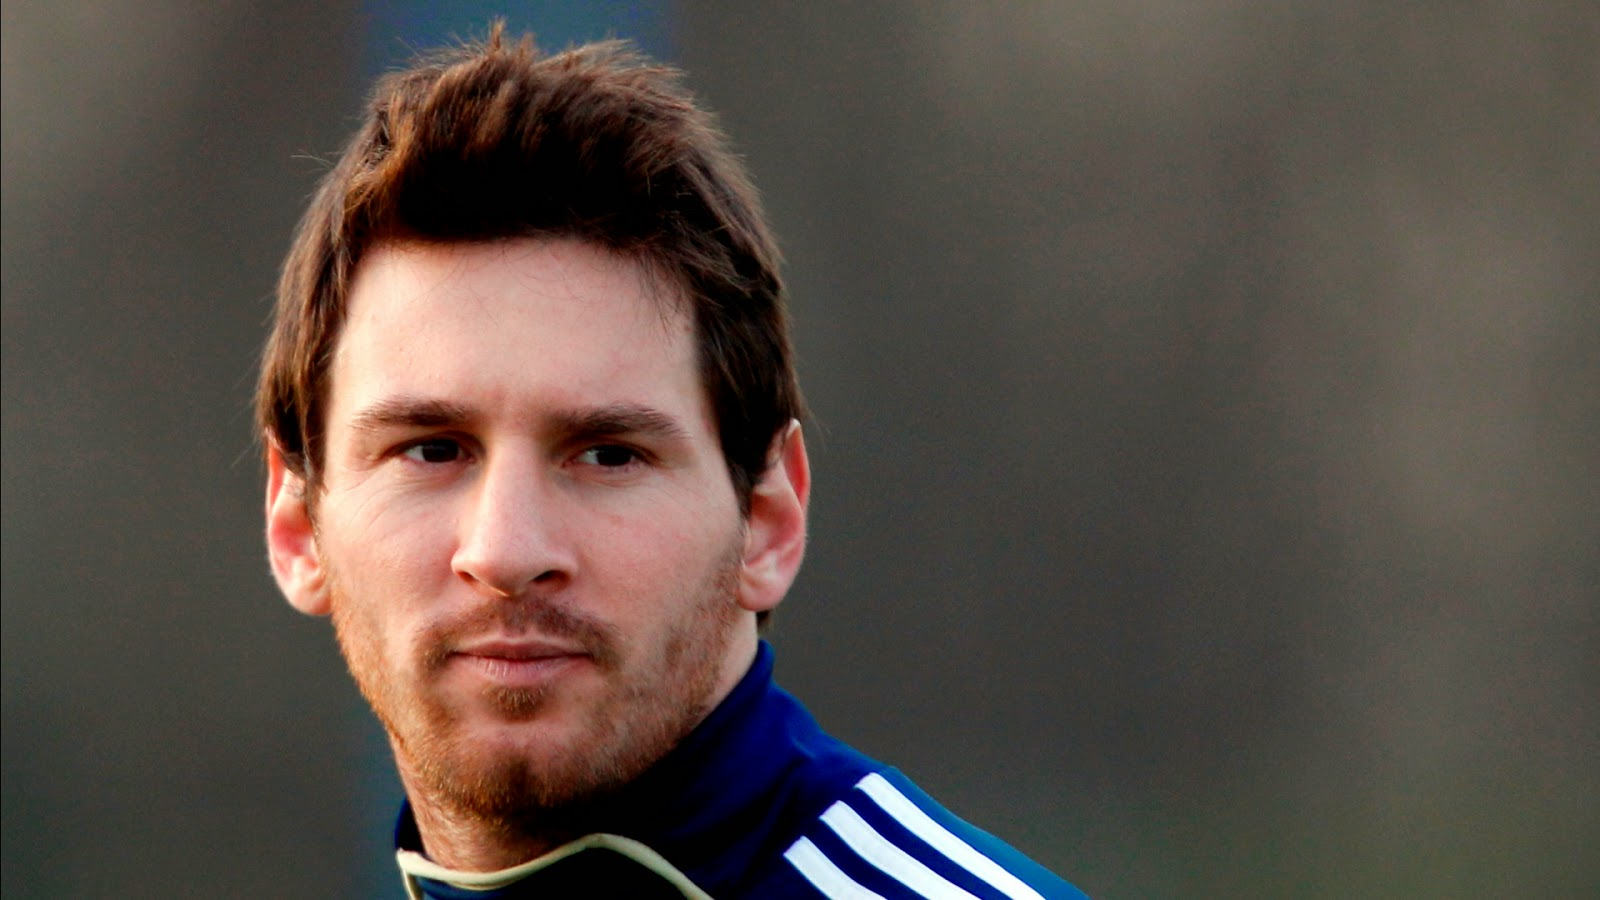 Lionel Messi Hairstyles Smile Photos Hairstyles Photos